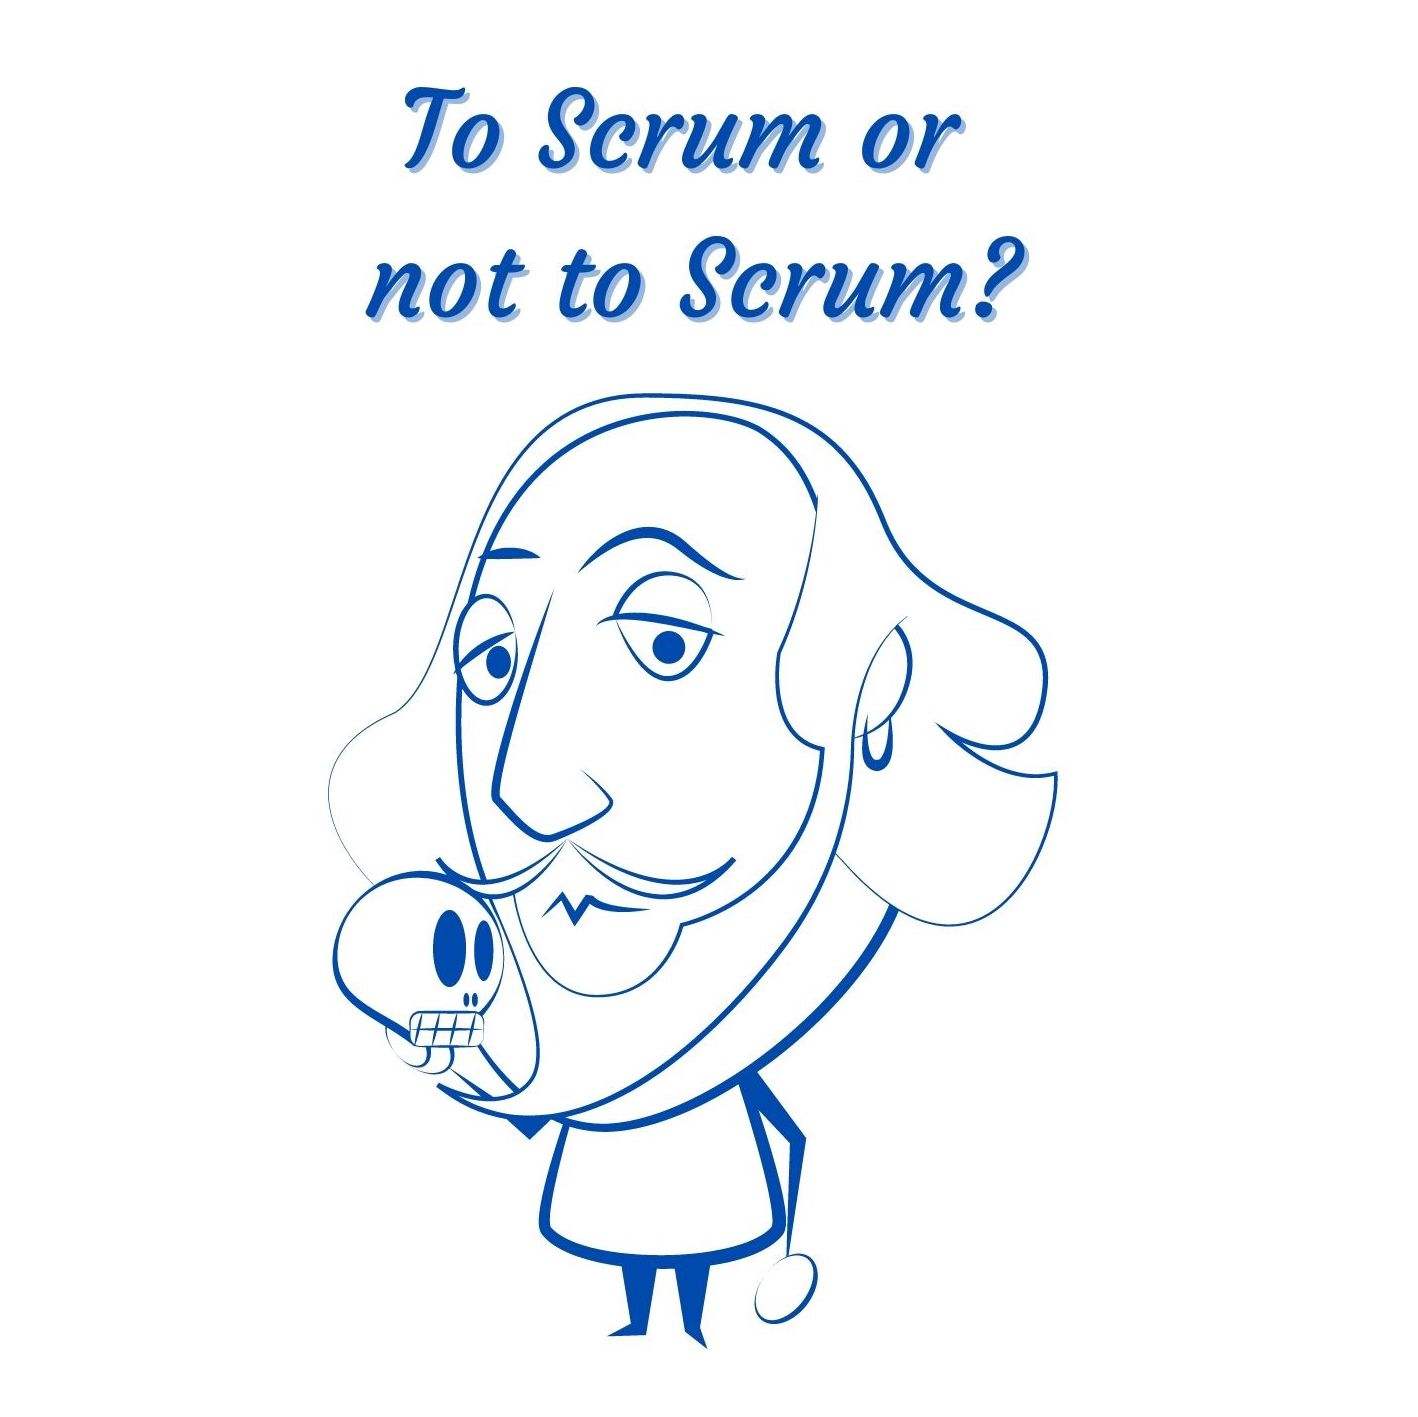 What type of products should use Scrum?